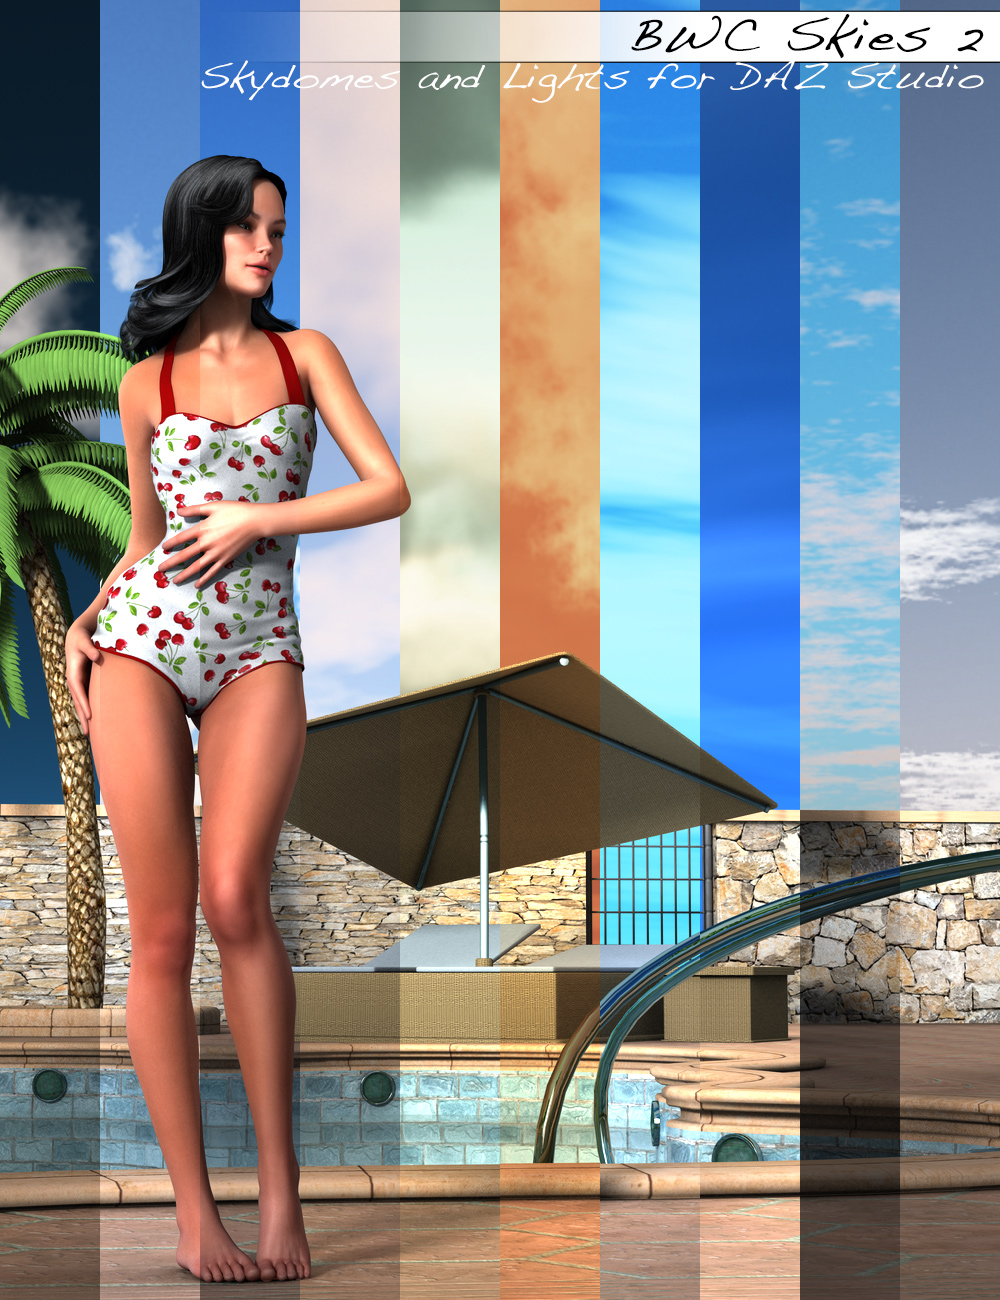 BWC Skies 2 by: Sedor, 3D Models by Daz 3D